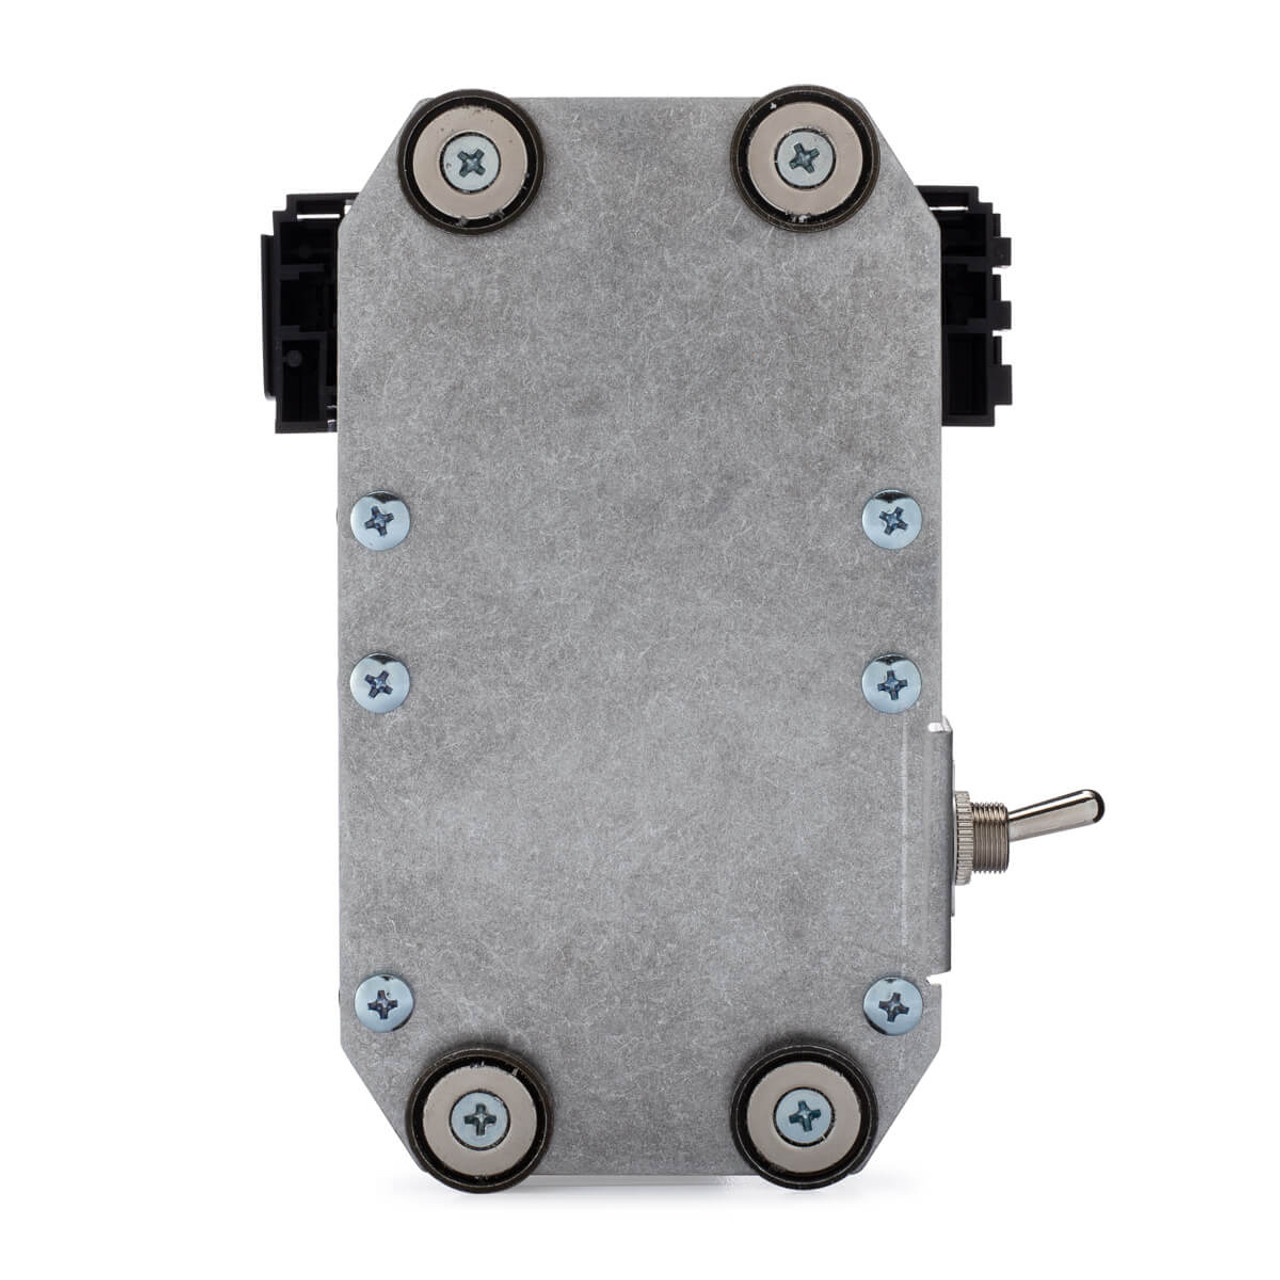 fuse panel firewall magnetic mount kwikwire com electrify your ride wire harness magnets  [ 1280 x 1280 Pixel ]